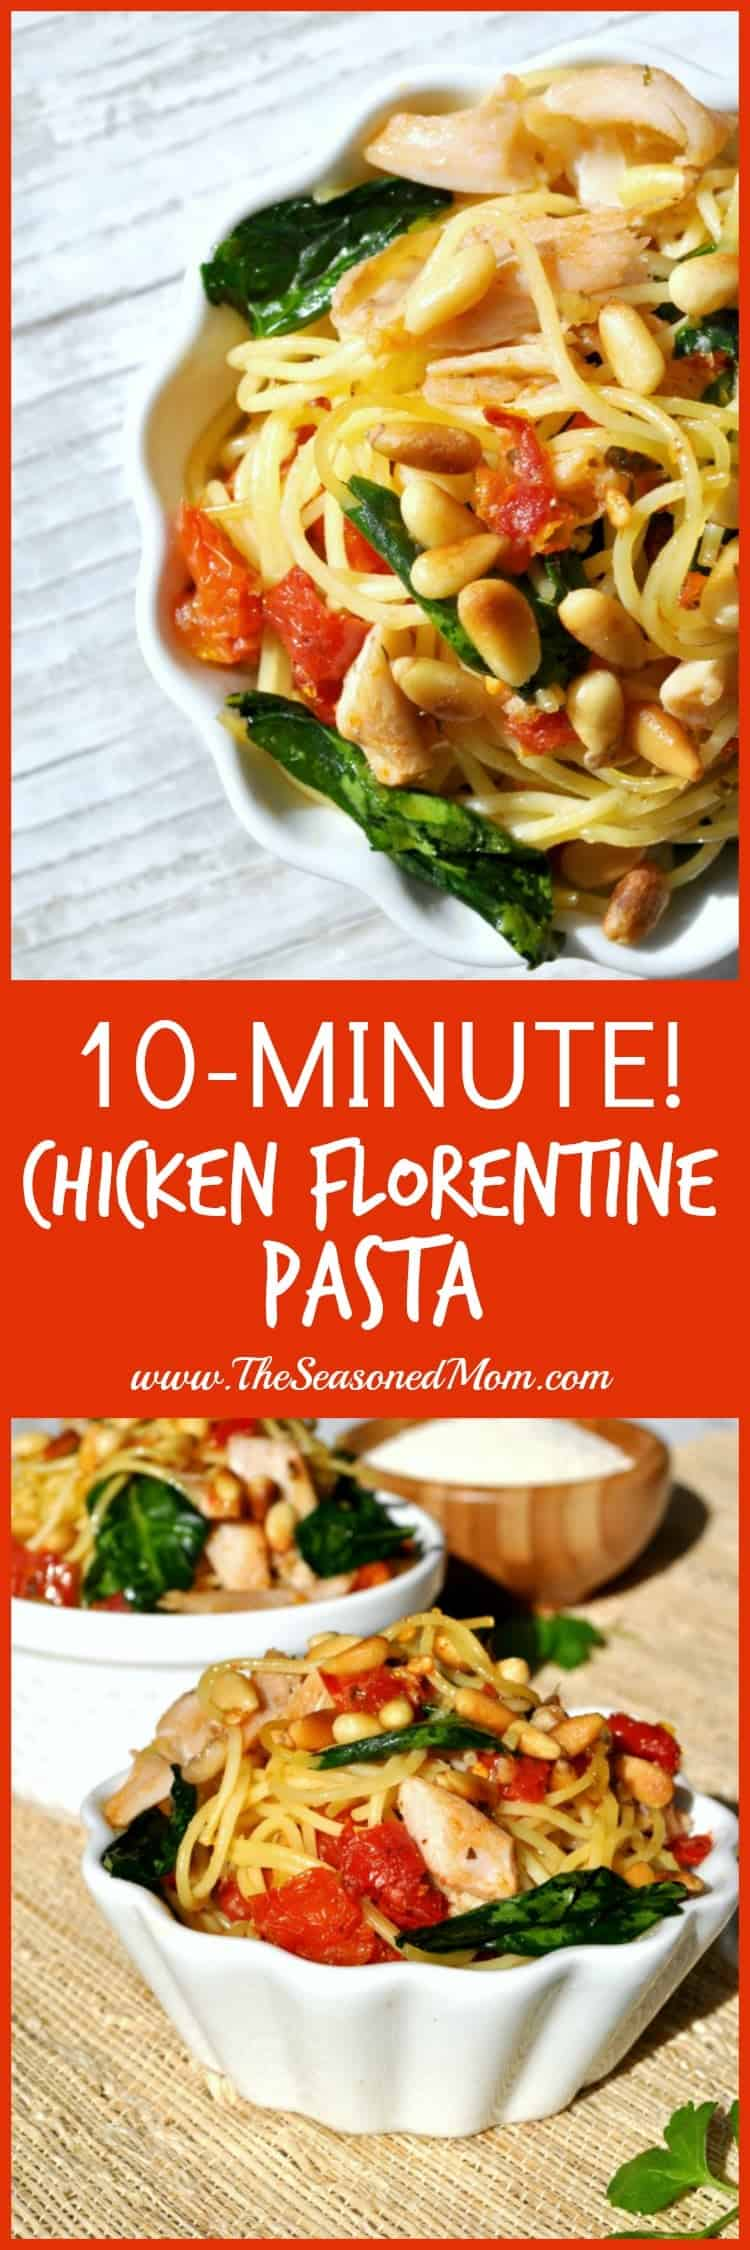 10 Minute Chicken Florentine Pasta 2